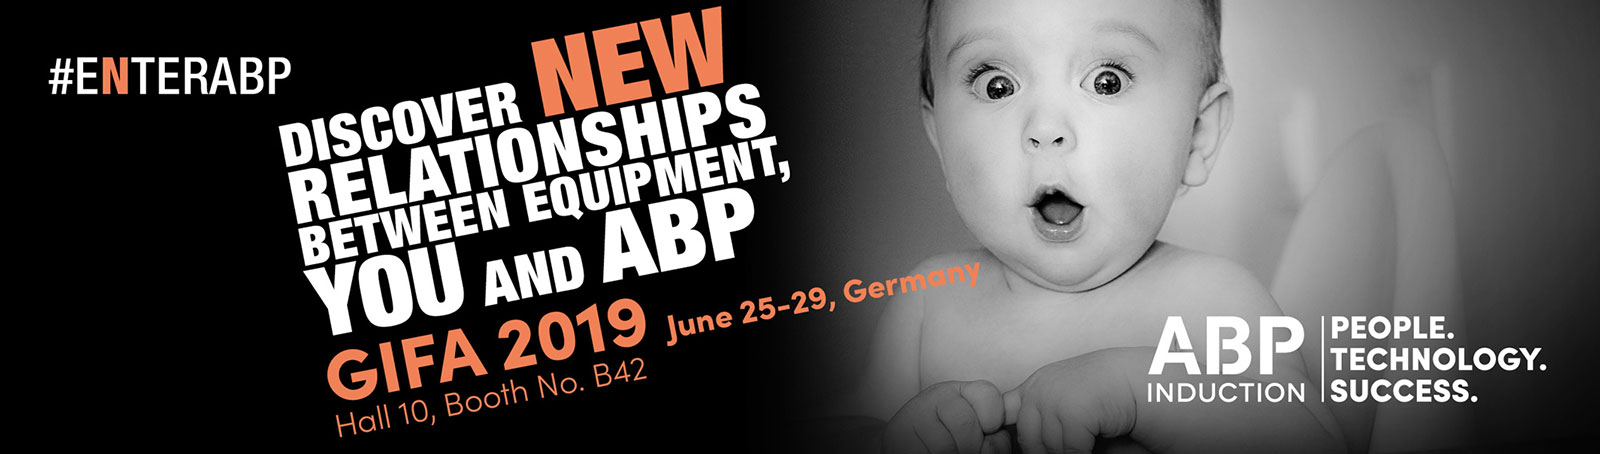 Discover new relationships - ABP at the GIFA 2019